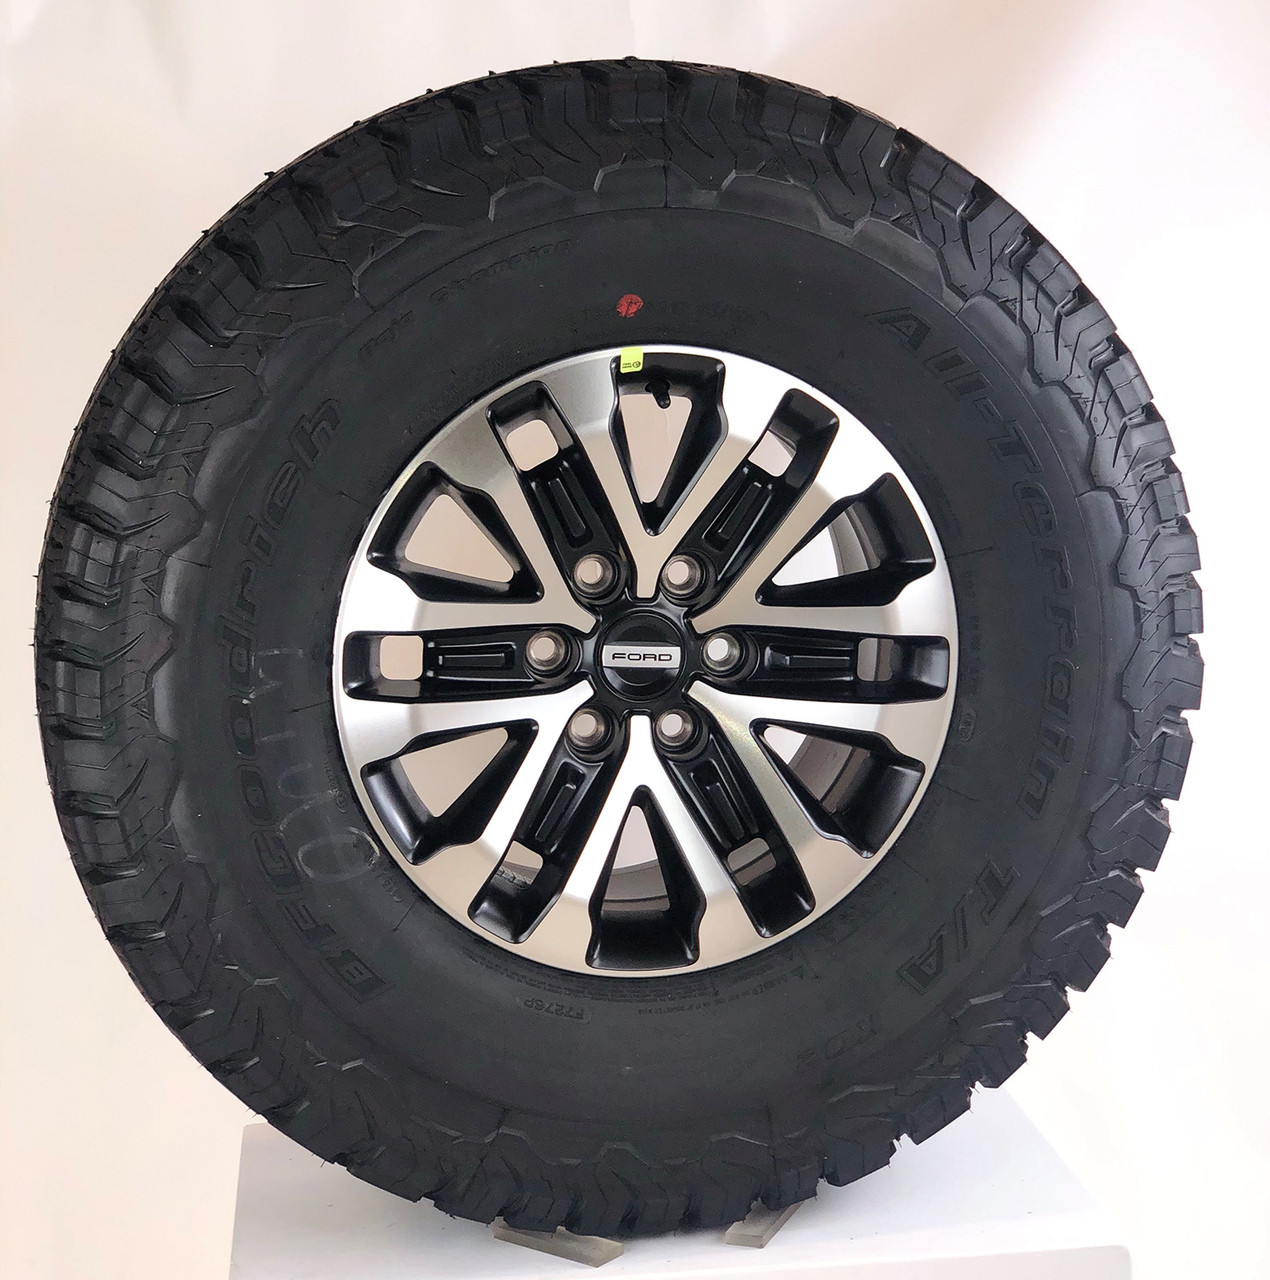 Ford F150 Factory Rims For Sale >> New Takeoff Ford F150 Raptor 17 Factory Oem Wheels Rims 315 70r17 Bfg Tires